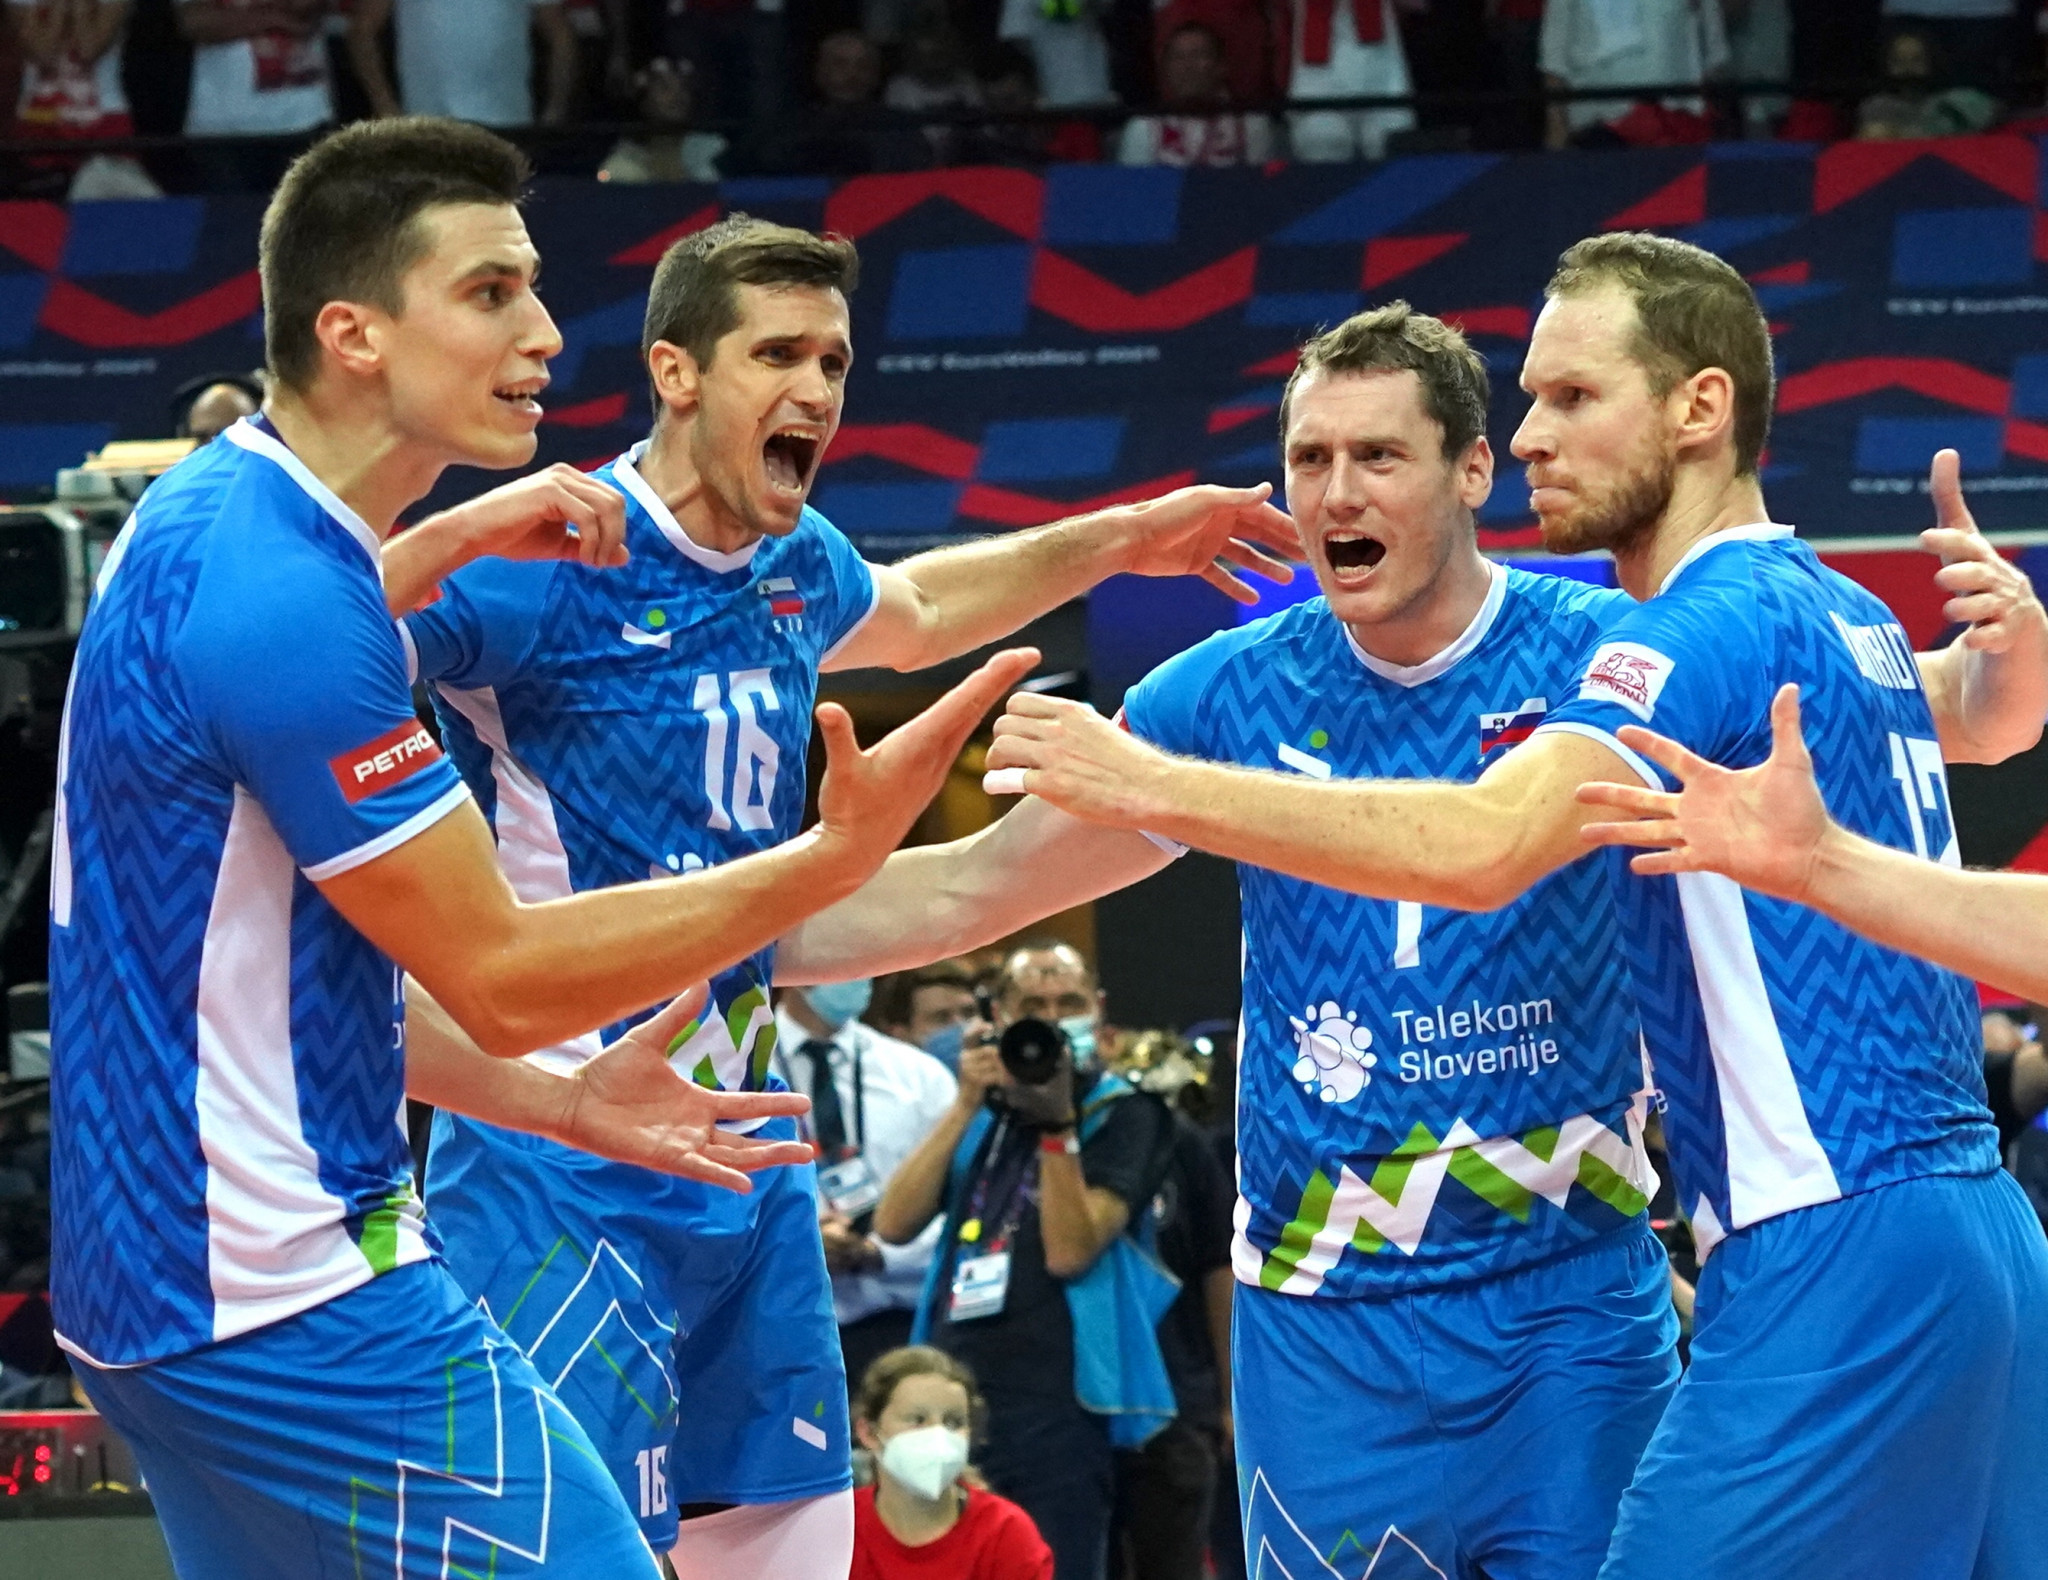 Following a thrilling fourth set against Poland, Slovenia secured their place in the CEV EuroVolley 2021 final ©Getty Images